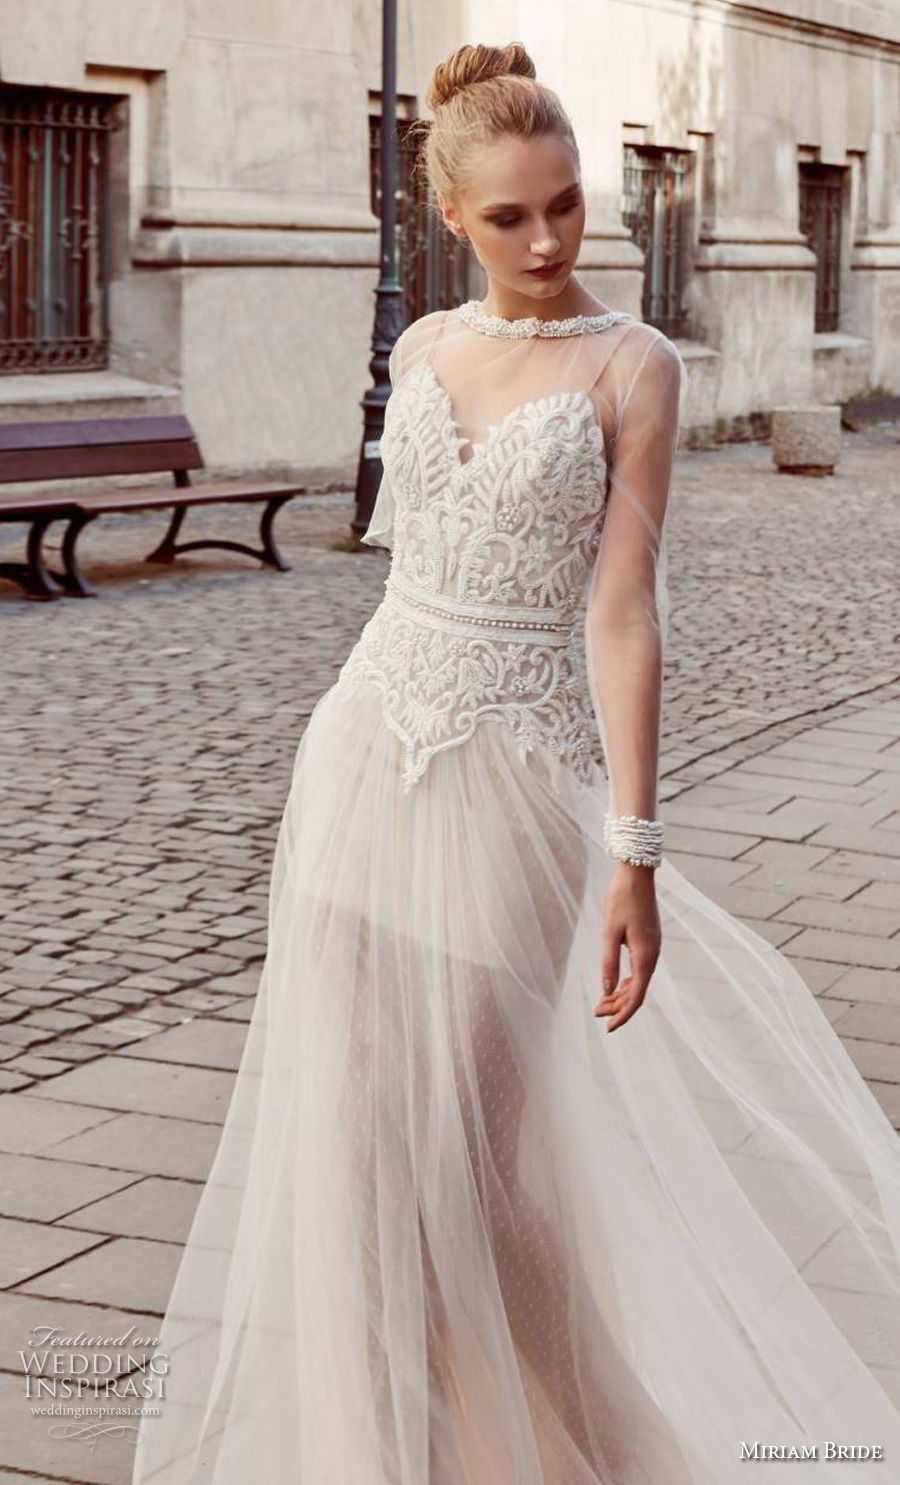 miriams bride 2018 bridal long sleeves illusion jewel sweetheart neckline heavily embellished bodice romantic soft a line wedding dress (2) mv